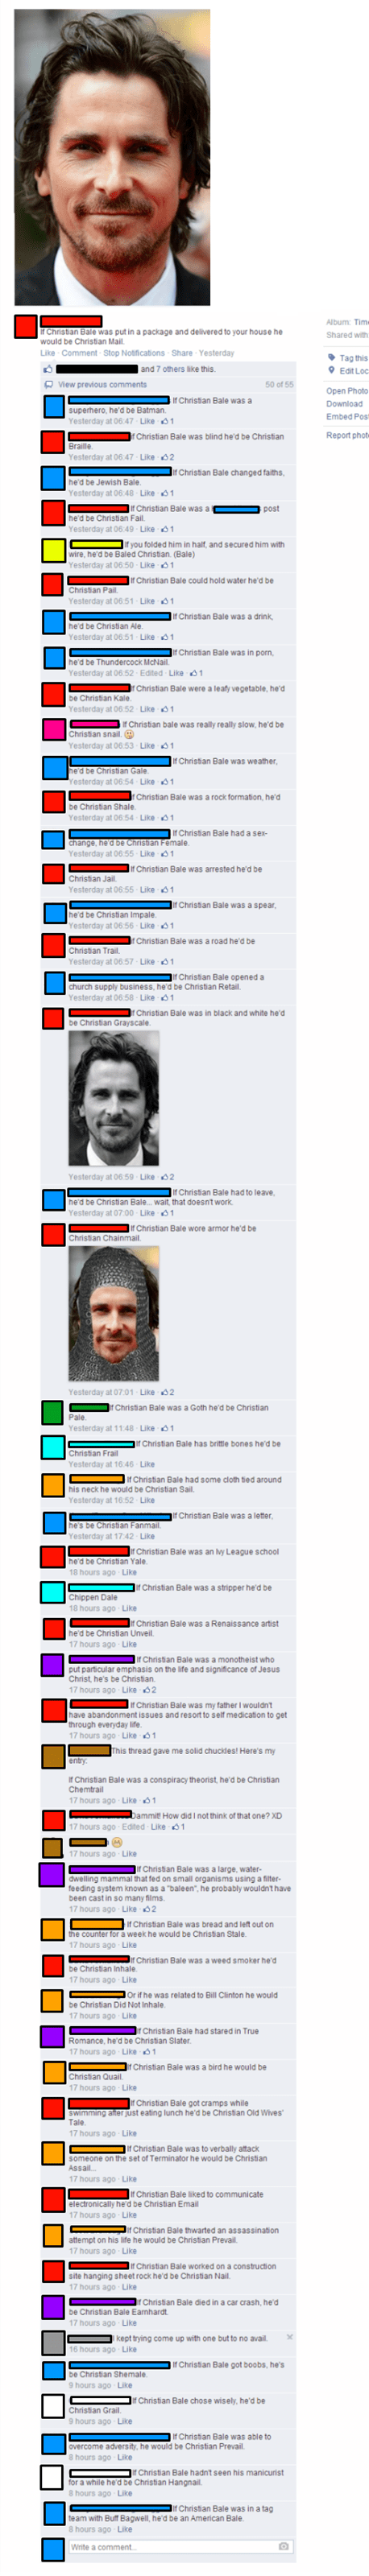 christian bale facebook comments